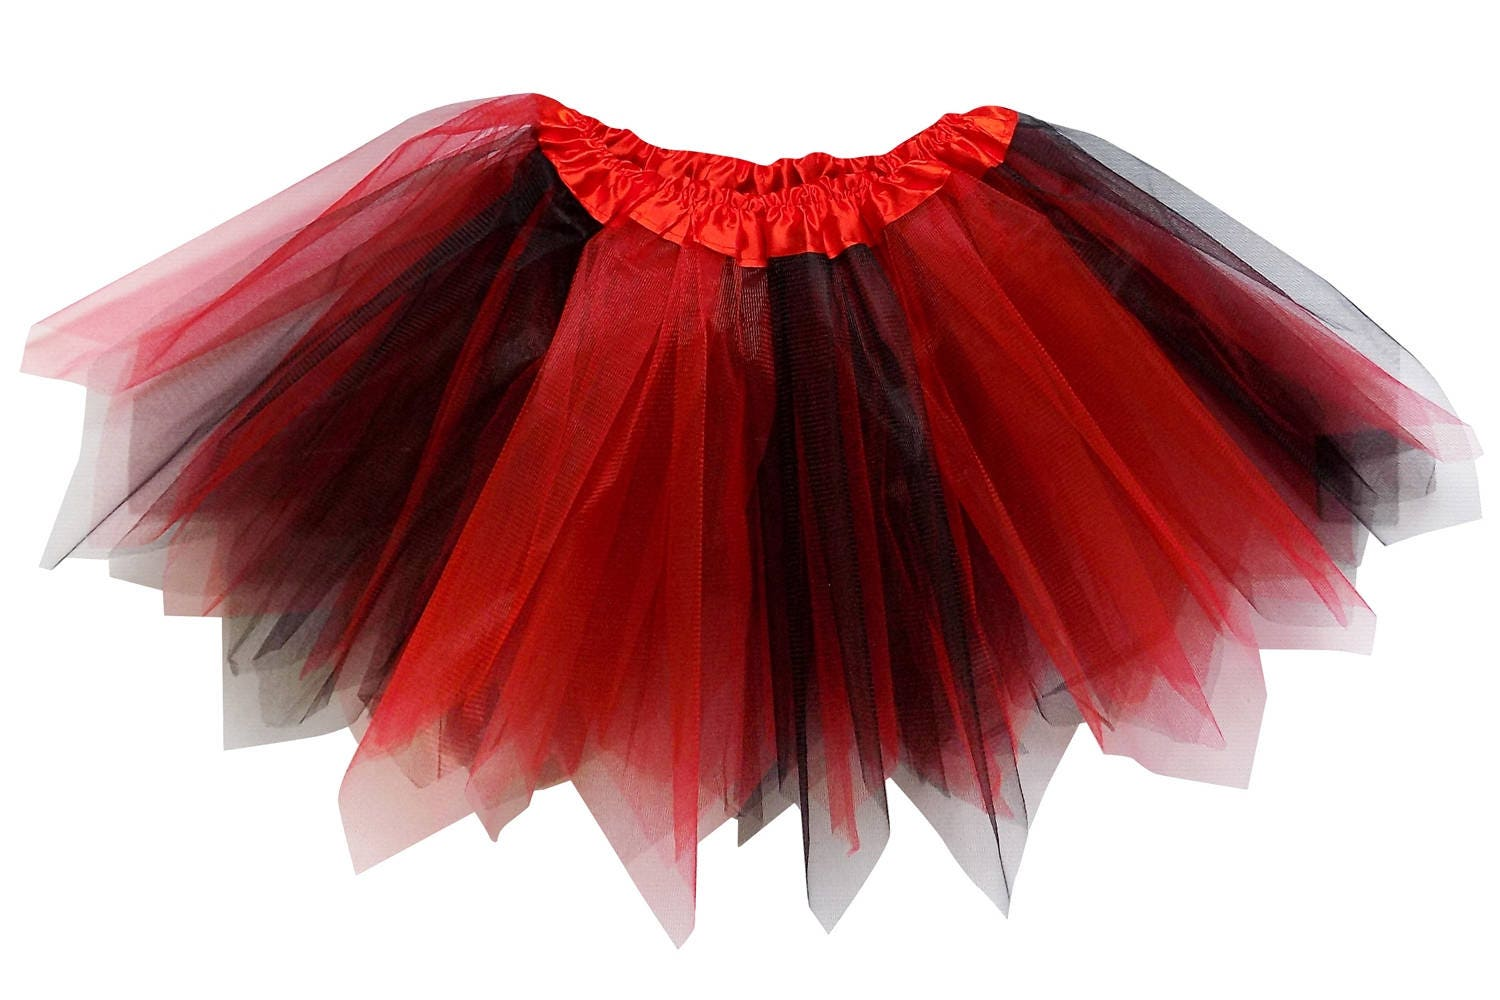 d79629e0a Red & Black 3 Layer Pixie Angle Cut Tutu Skirt Kid Adult | Etsy